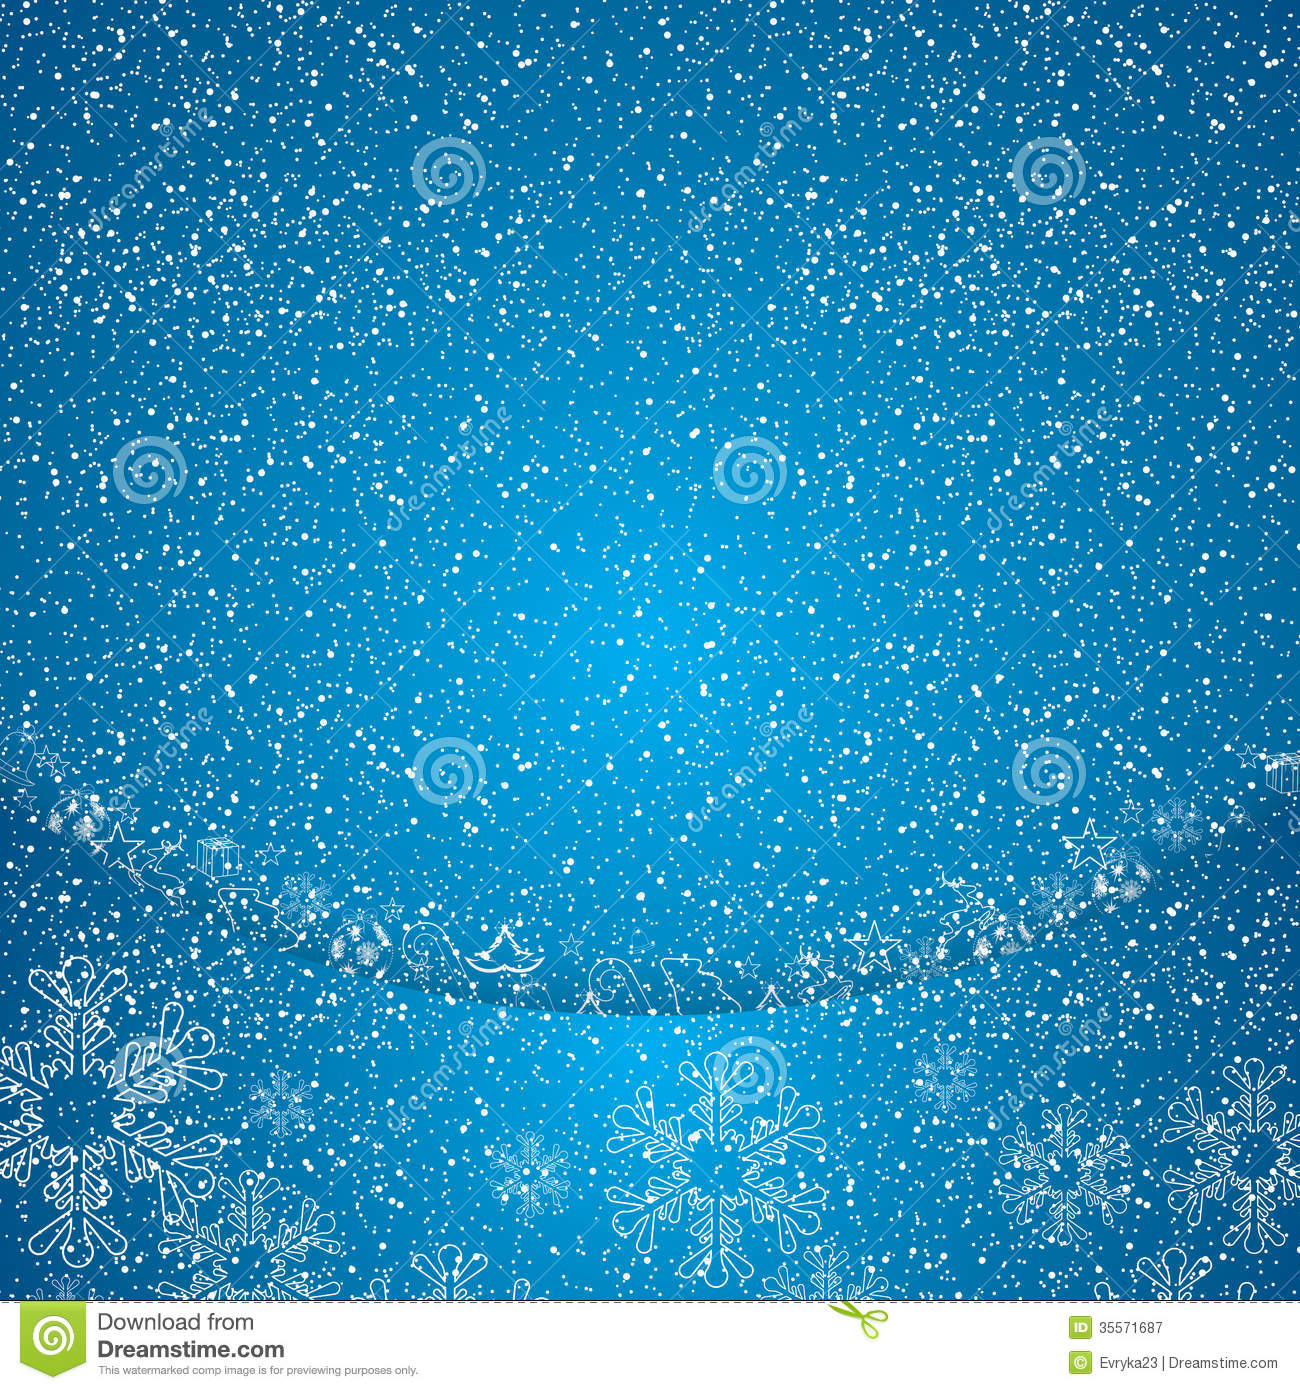 abstract winter background free - photo #16